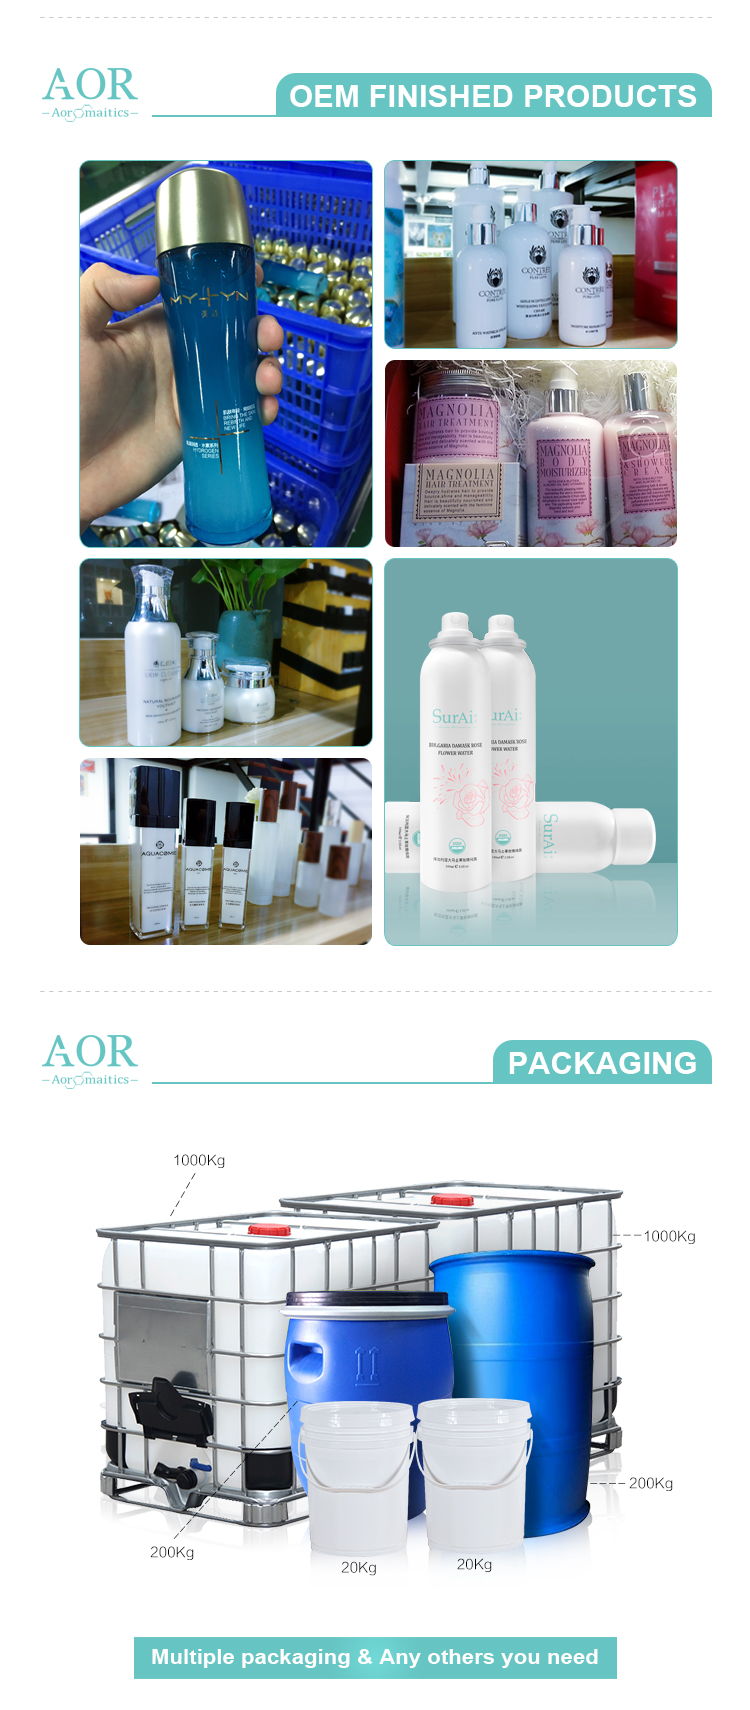 OEM/ODM Regeneration Antiaging Essence/Lotion/Oil EGF activating Anti-aging Metabolism regulating